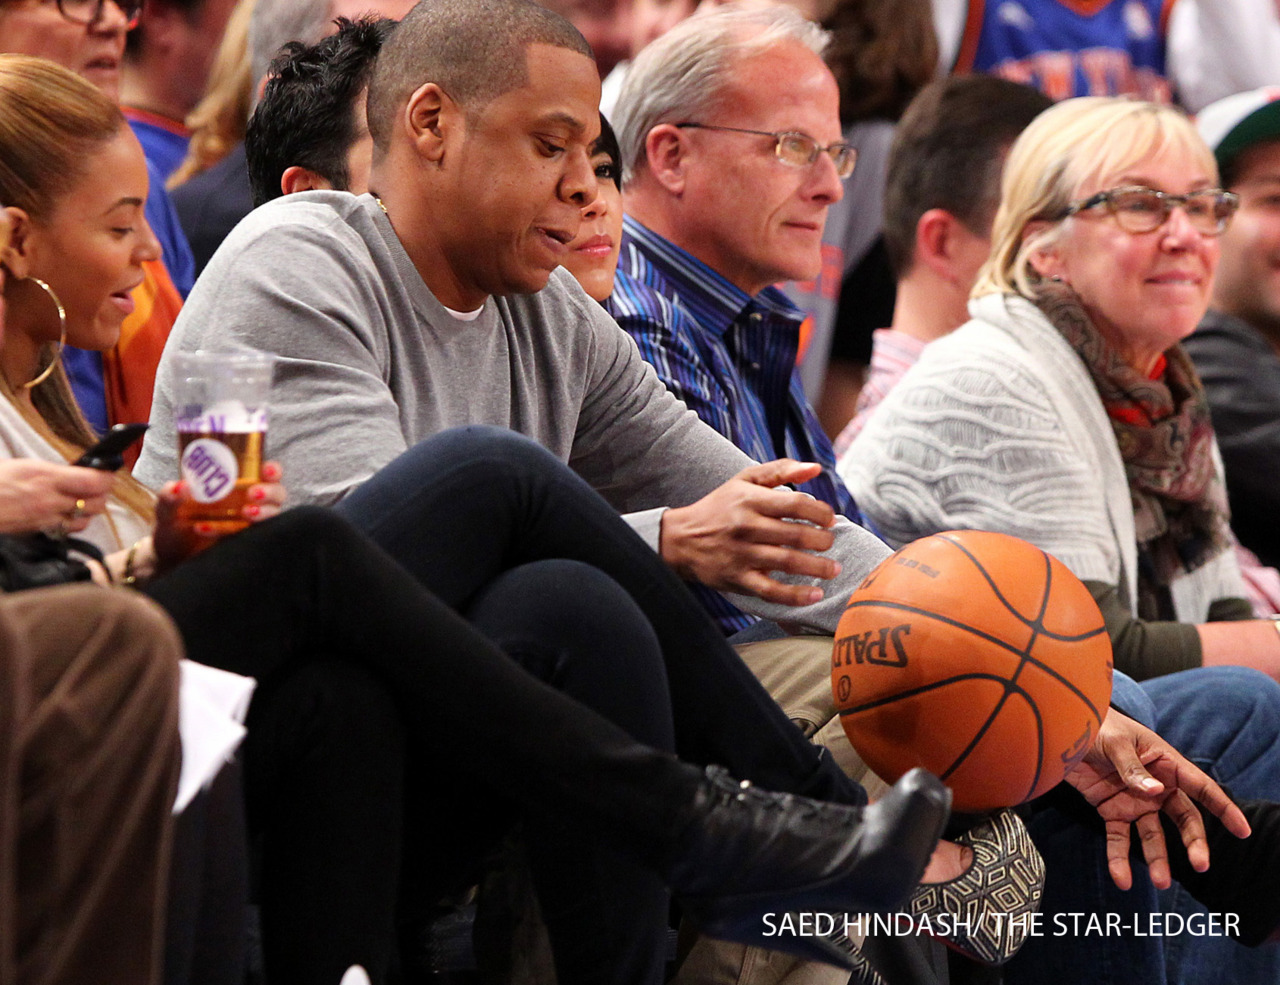 Jay-Z attempts to spin a basketball on the tip of Beyonce's high heel shoe during a time-out, as the New York Knicks play against the New Jersey Nets Monday February 20, 2012 at Madison Square Garden.